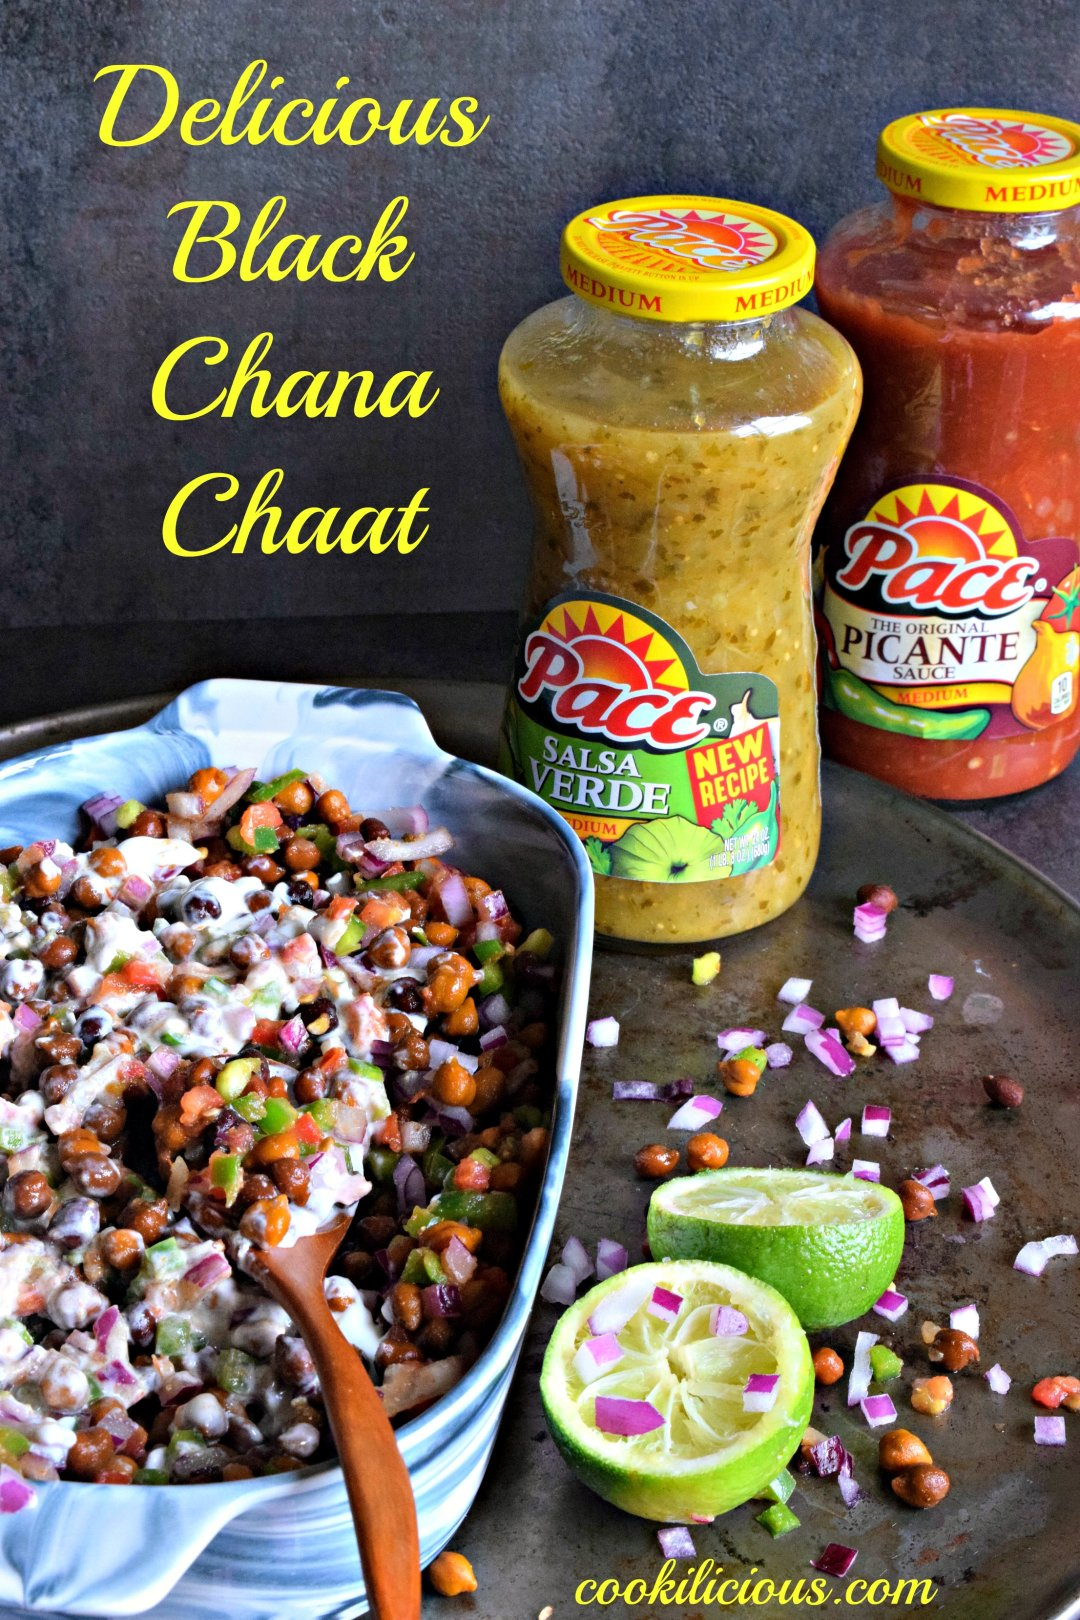 Black Chana Chaat - Indian Street FoodAppetizers & Snacks